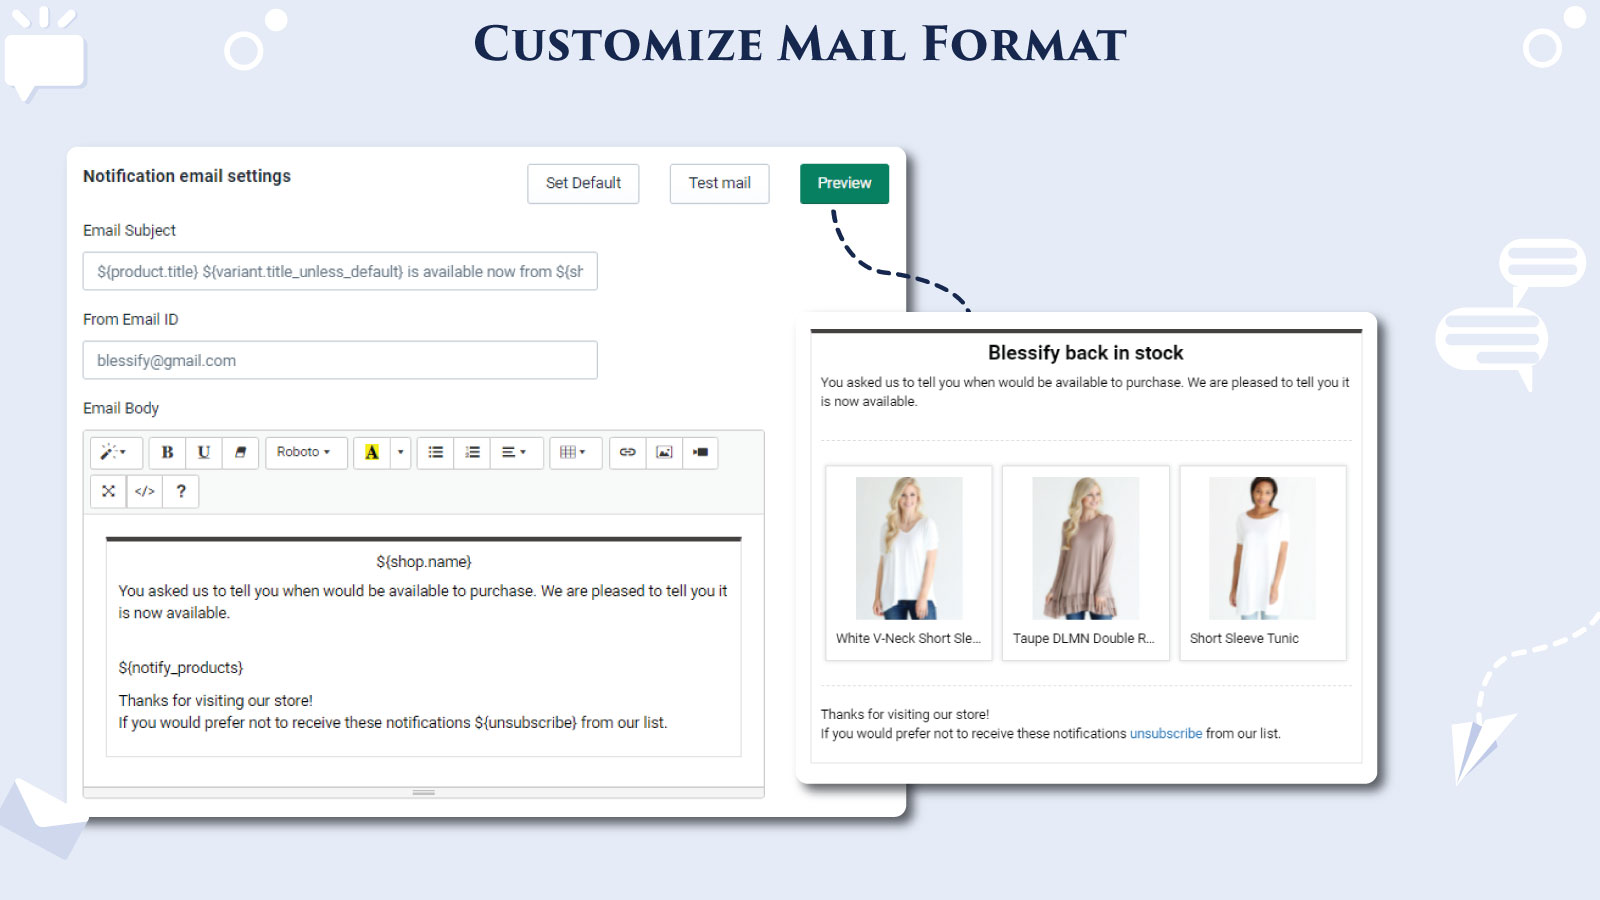 Customize mail format